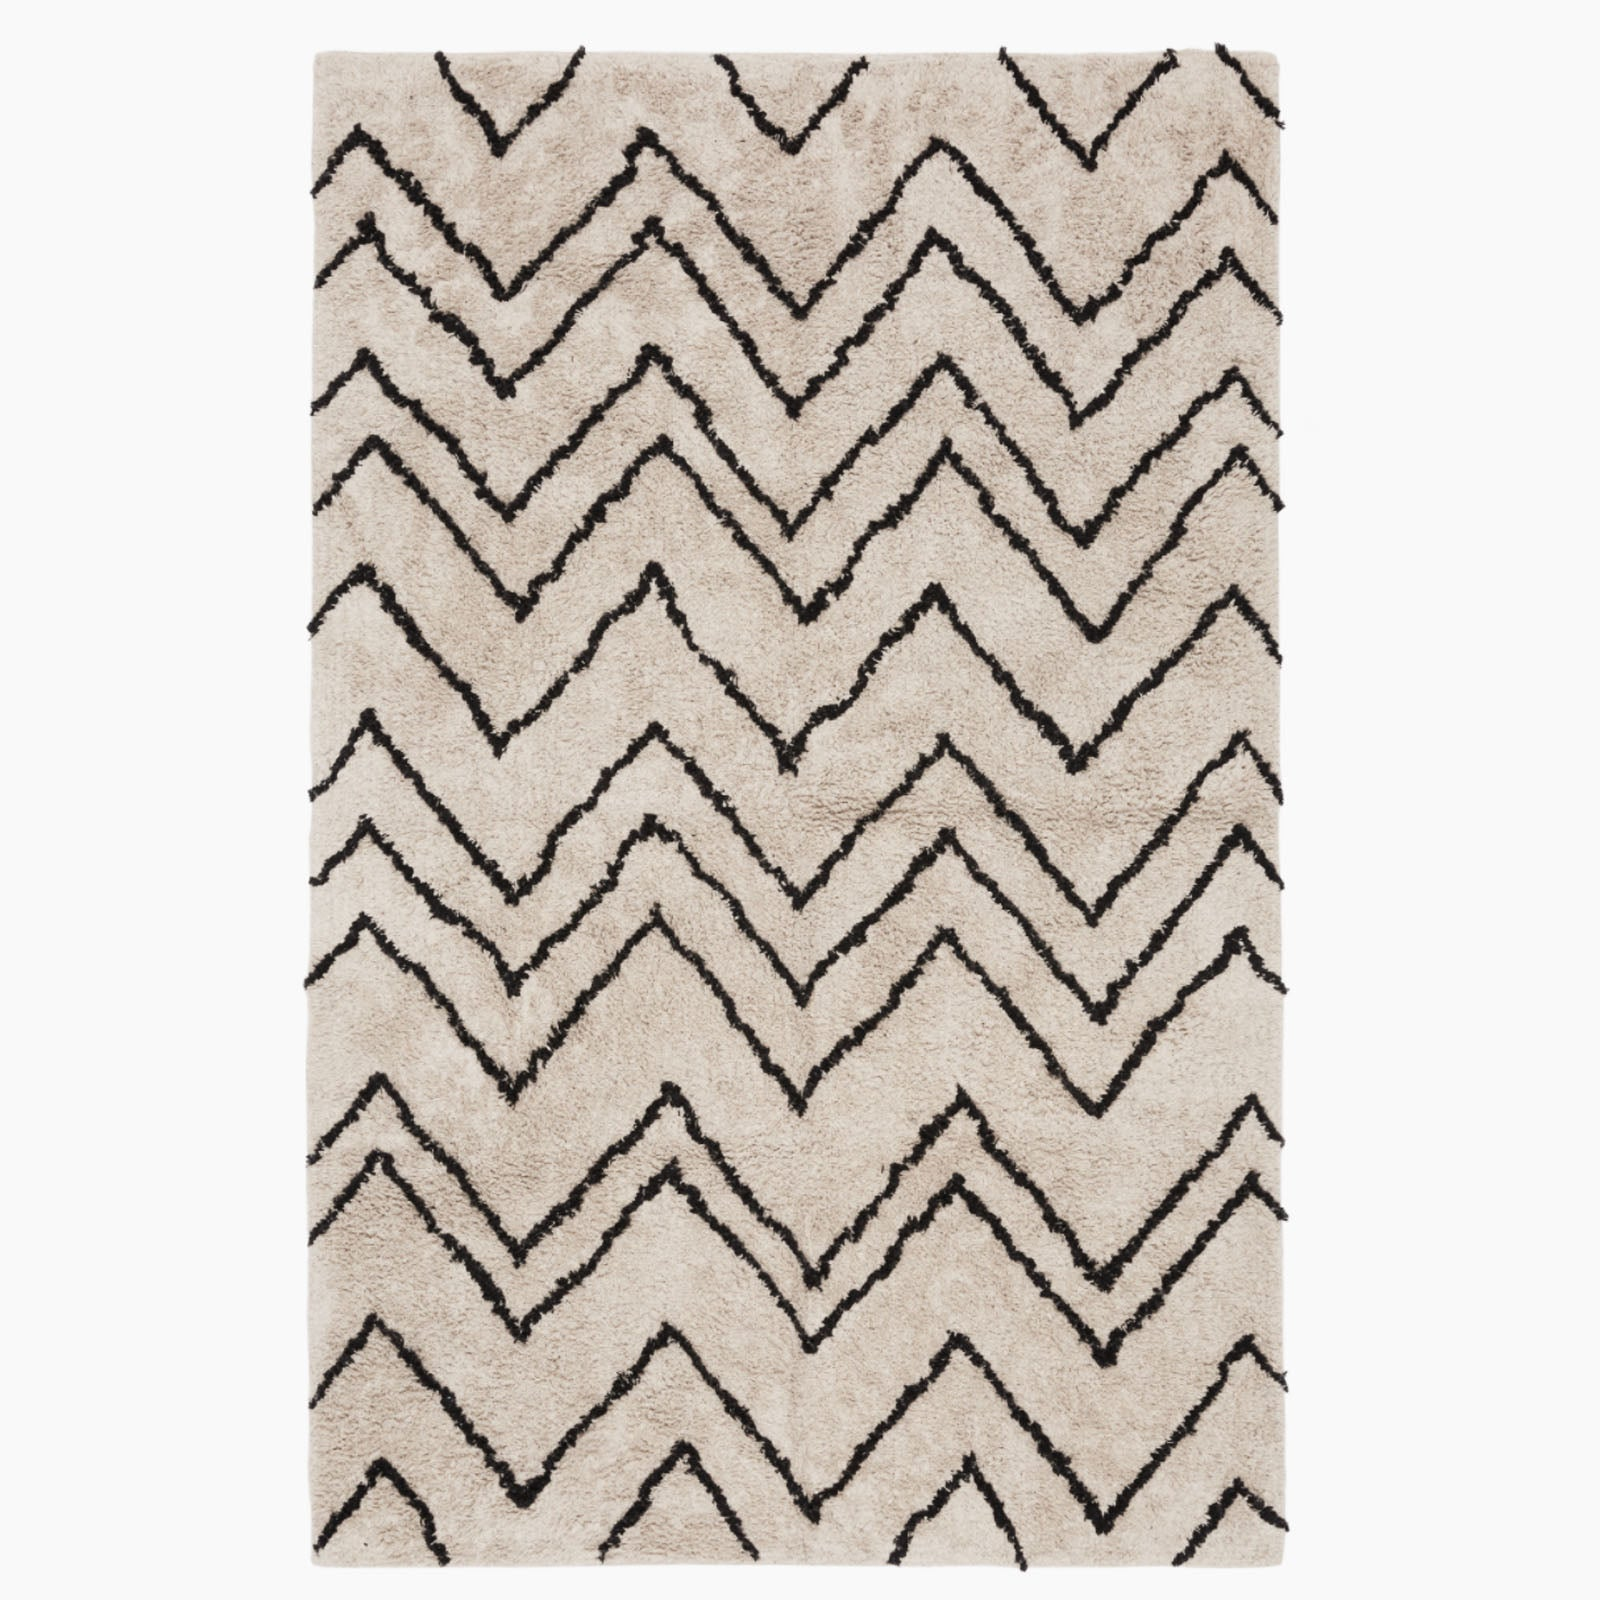 200x300 HANDMADE WOOL rug JH-2876-XL -  200x300 سجادة من الصوف صناعة يدوية - Shop Online Furniture and Home Decor Store in Dubai, UAE at ebarza